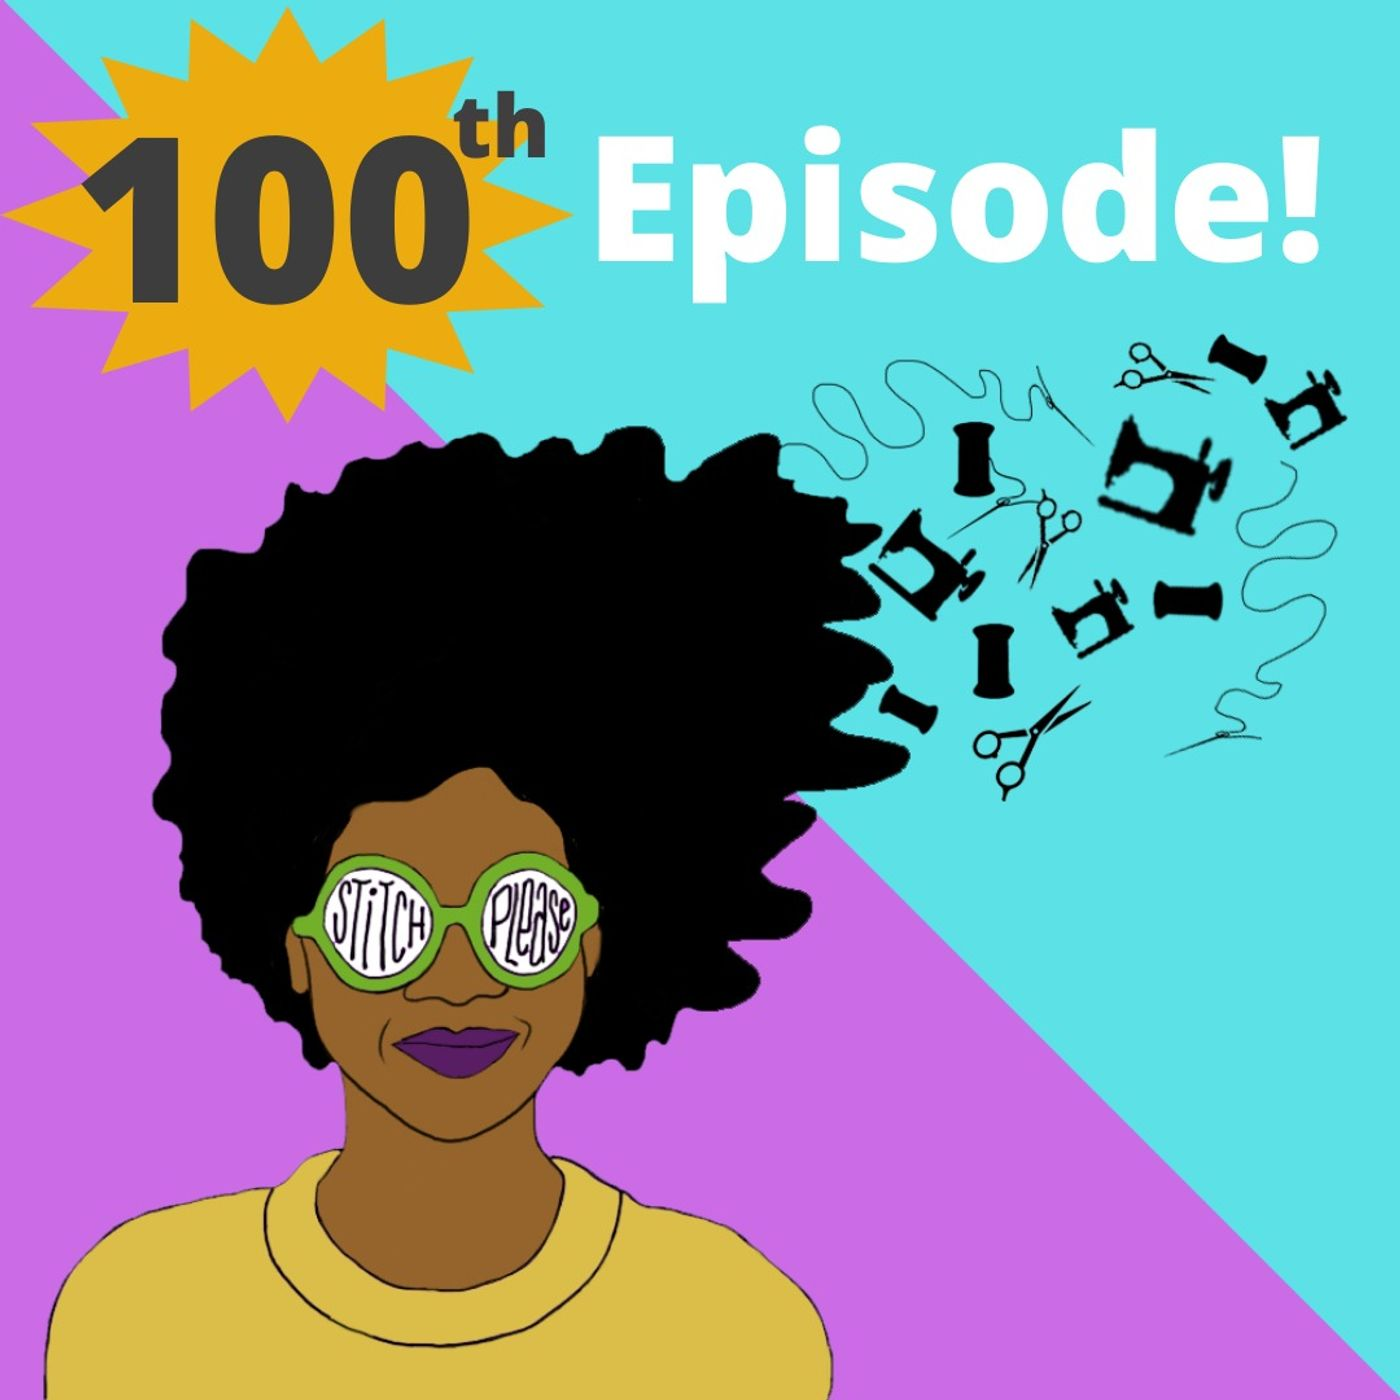 100th Episode!